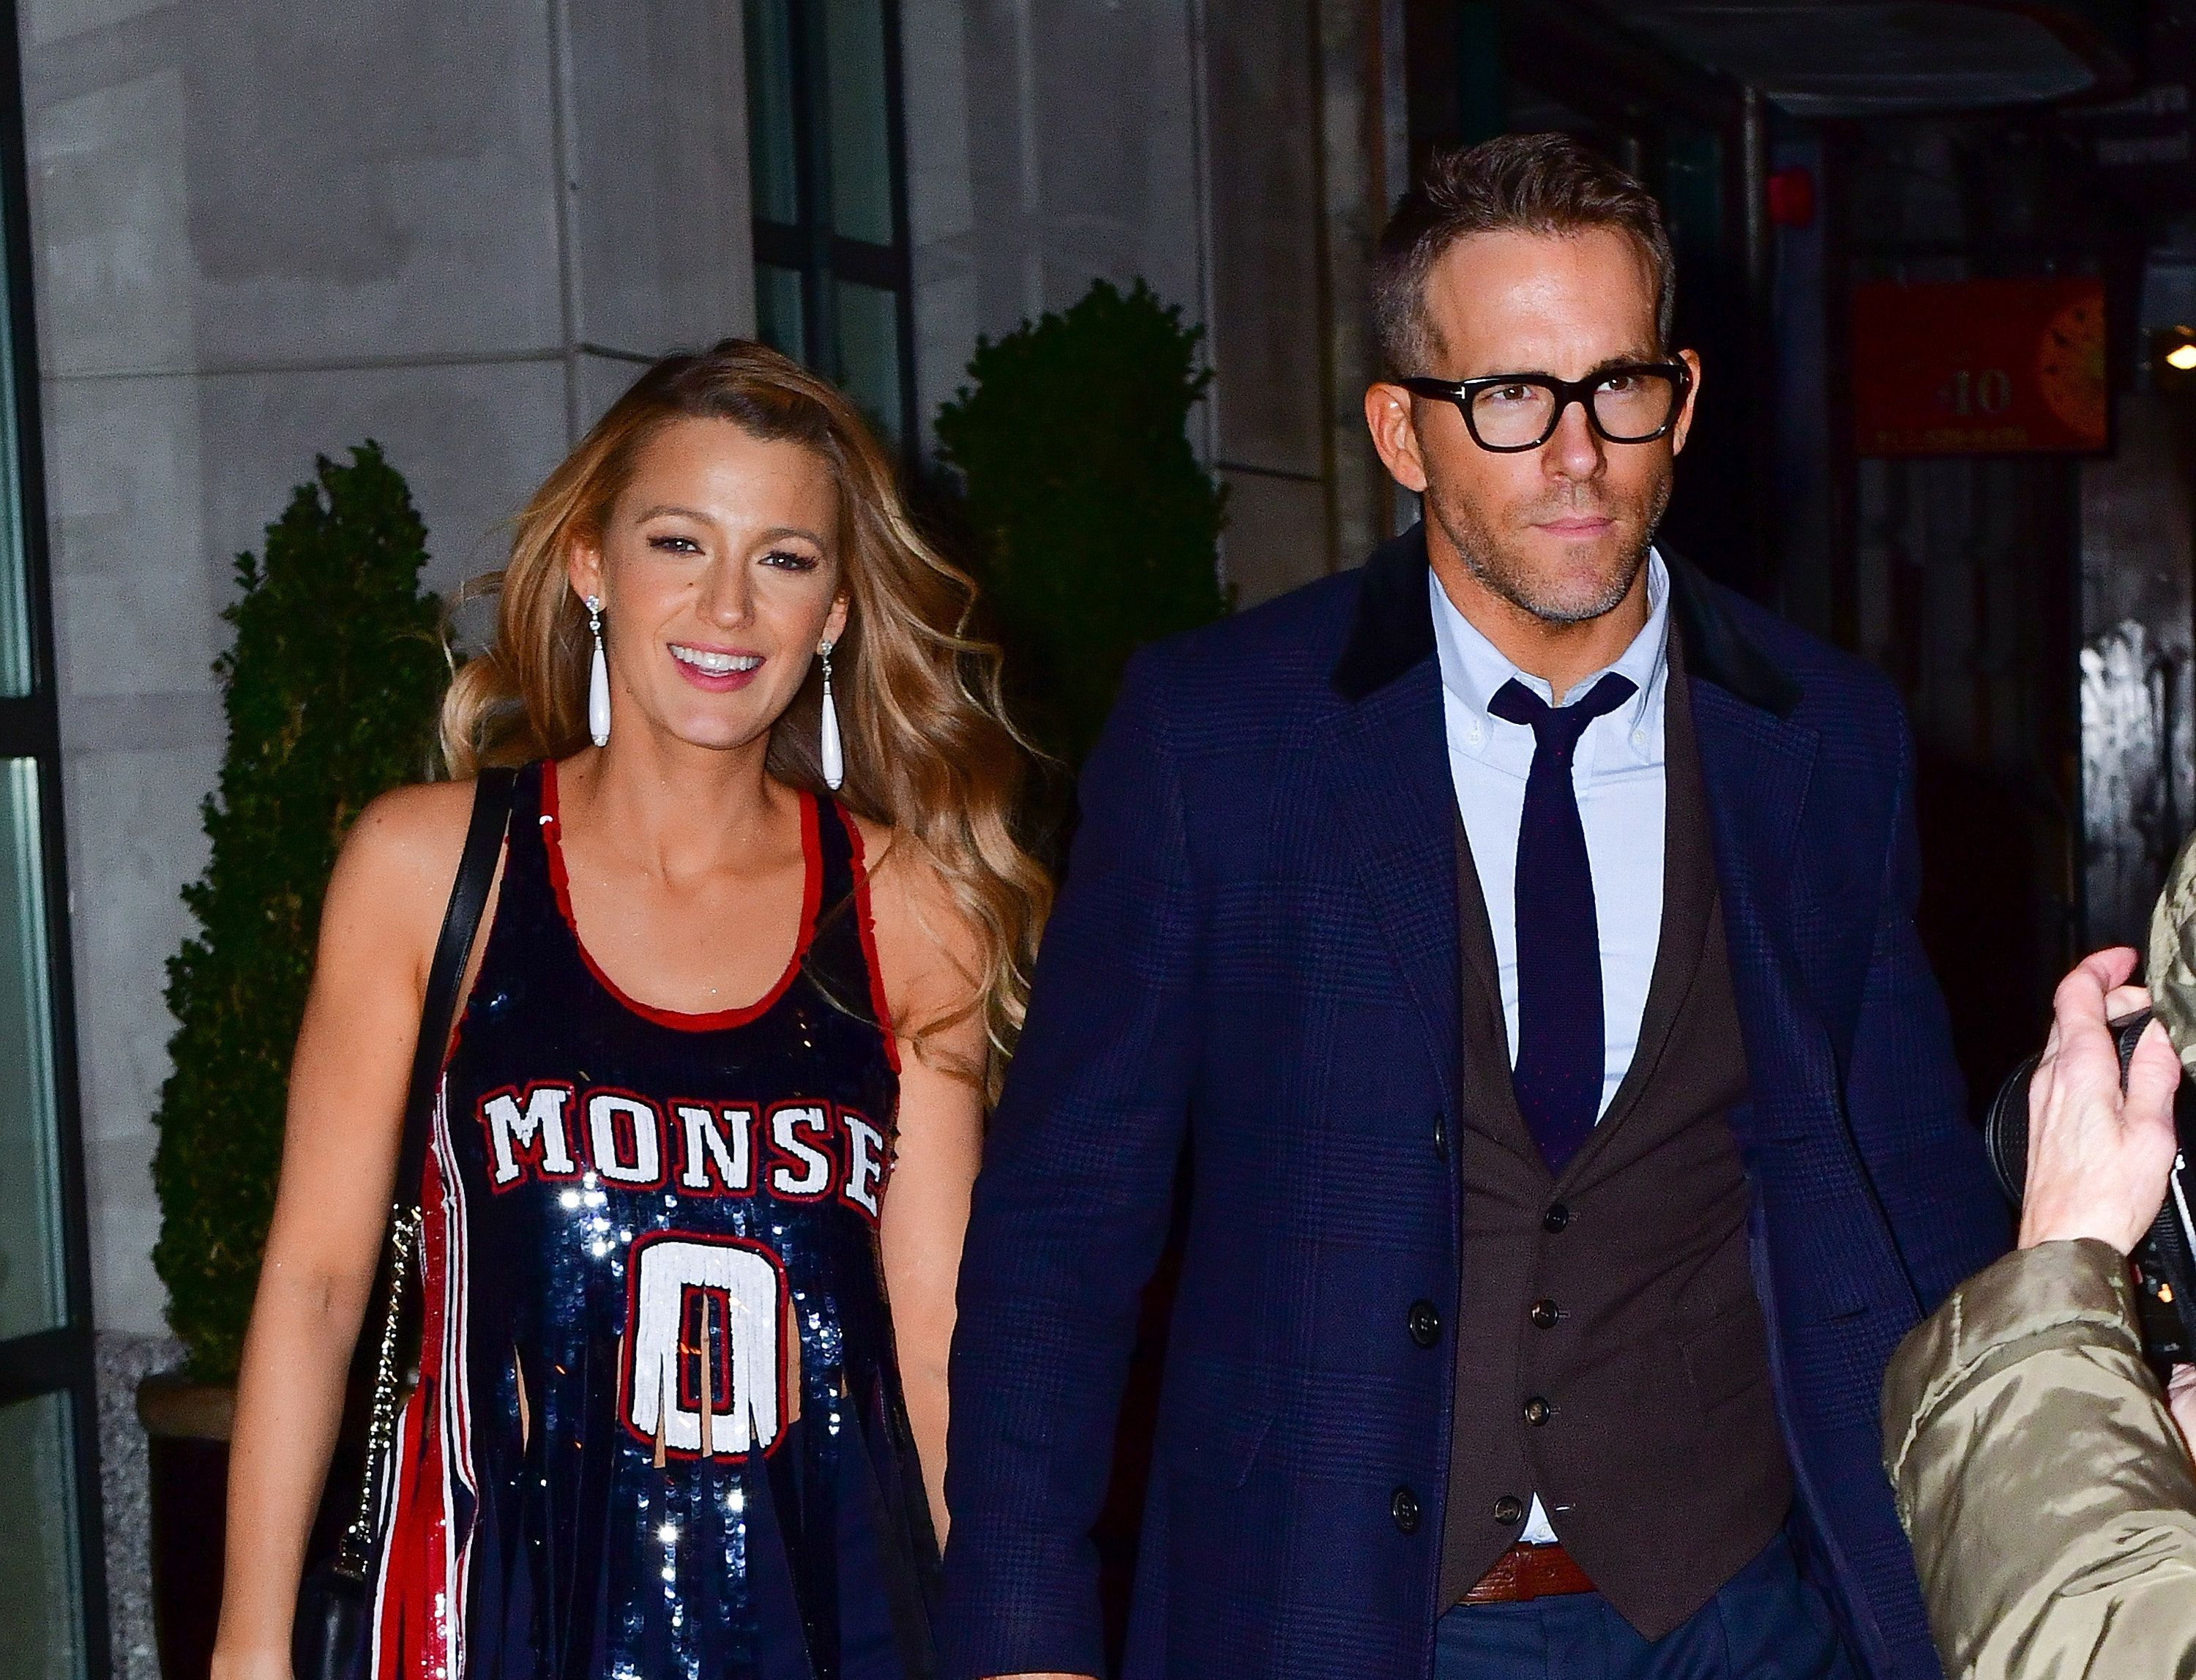 NEW YORK, NY - OCTOBER 16:  Blake Lively and Ryan Reynolds leave The Whitby Hotel on October 16, 2017 in New York City.  (Photo by James Devaney/GC Images)